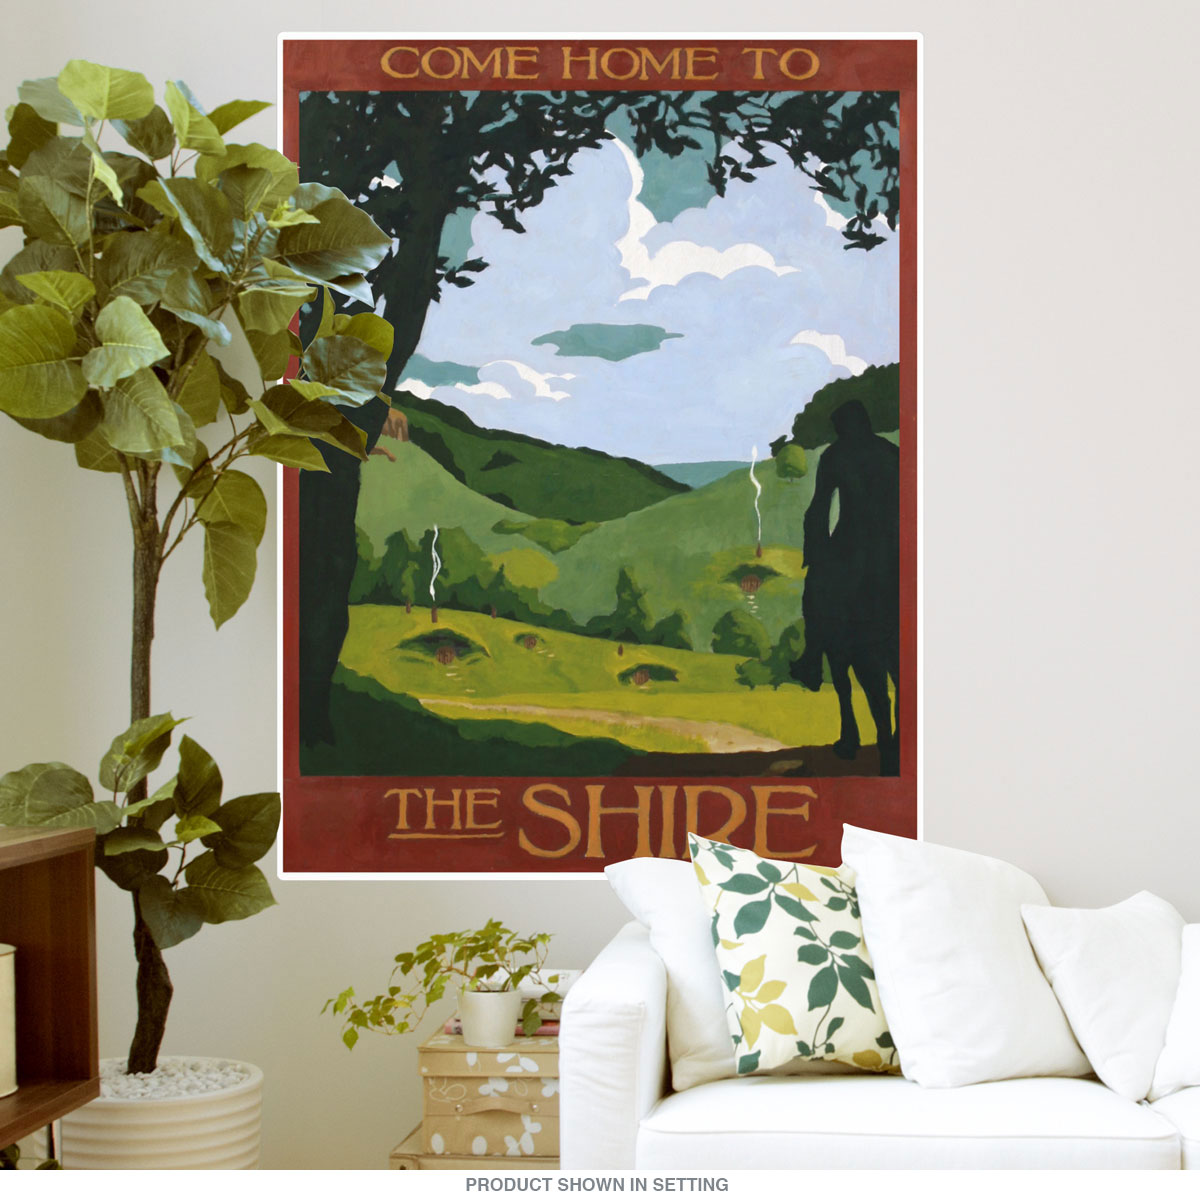 Shire lord of the rings wall decal home theater decor bizrate store ratings summary amipublicfo Choice Image